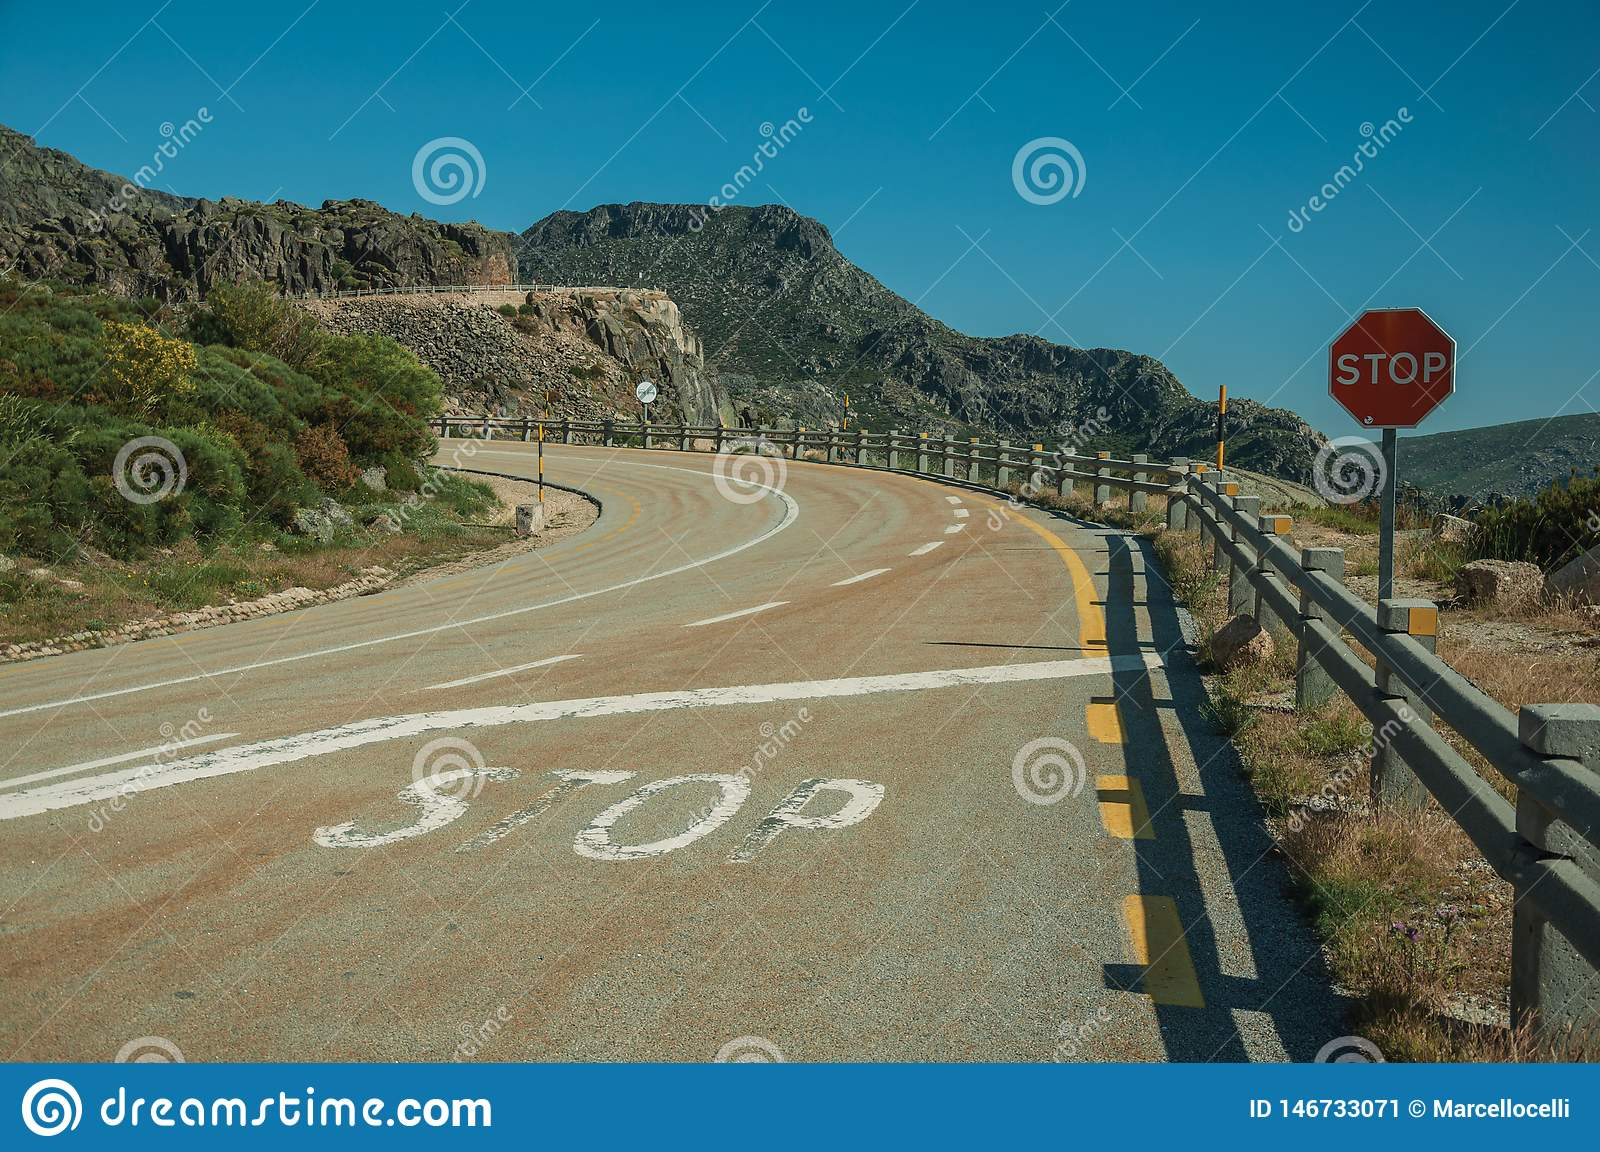 Road on rocky landscape with STOP traffic sign